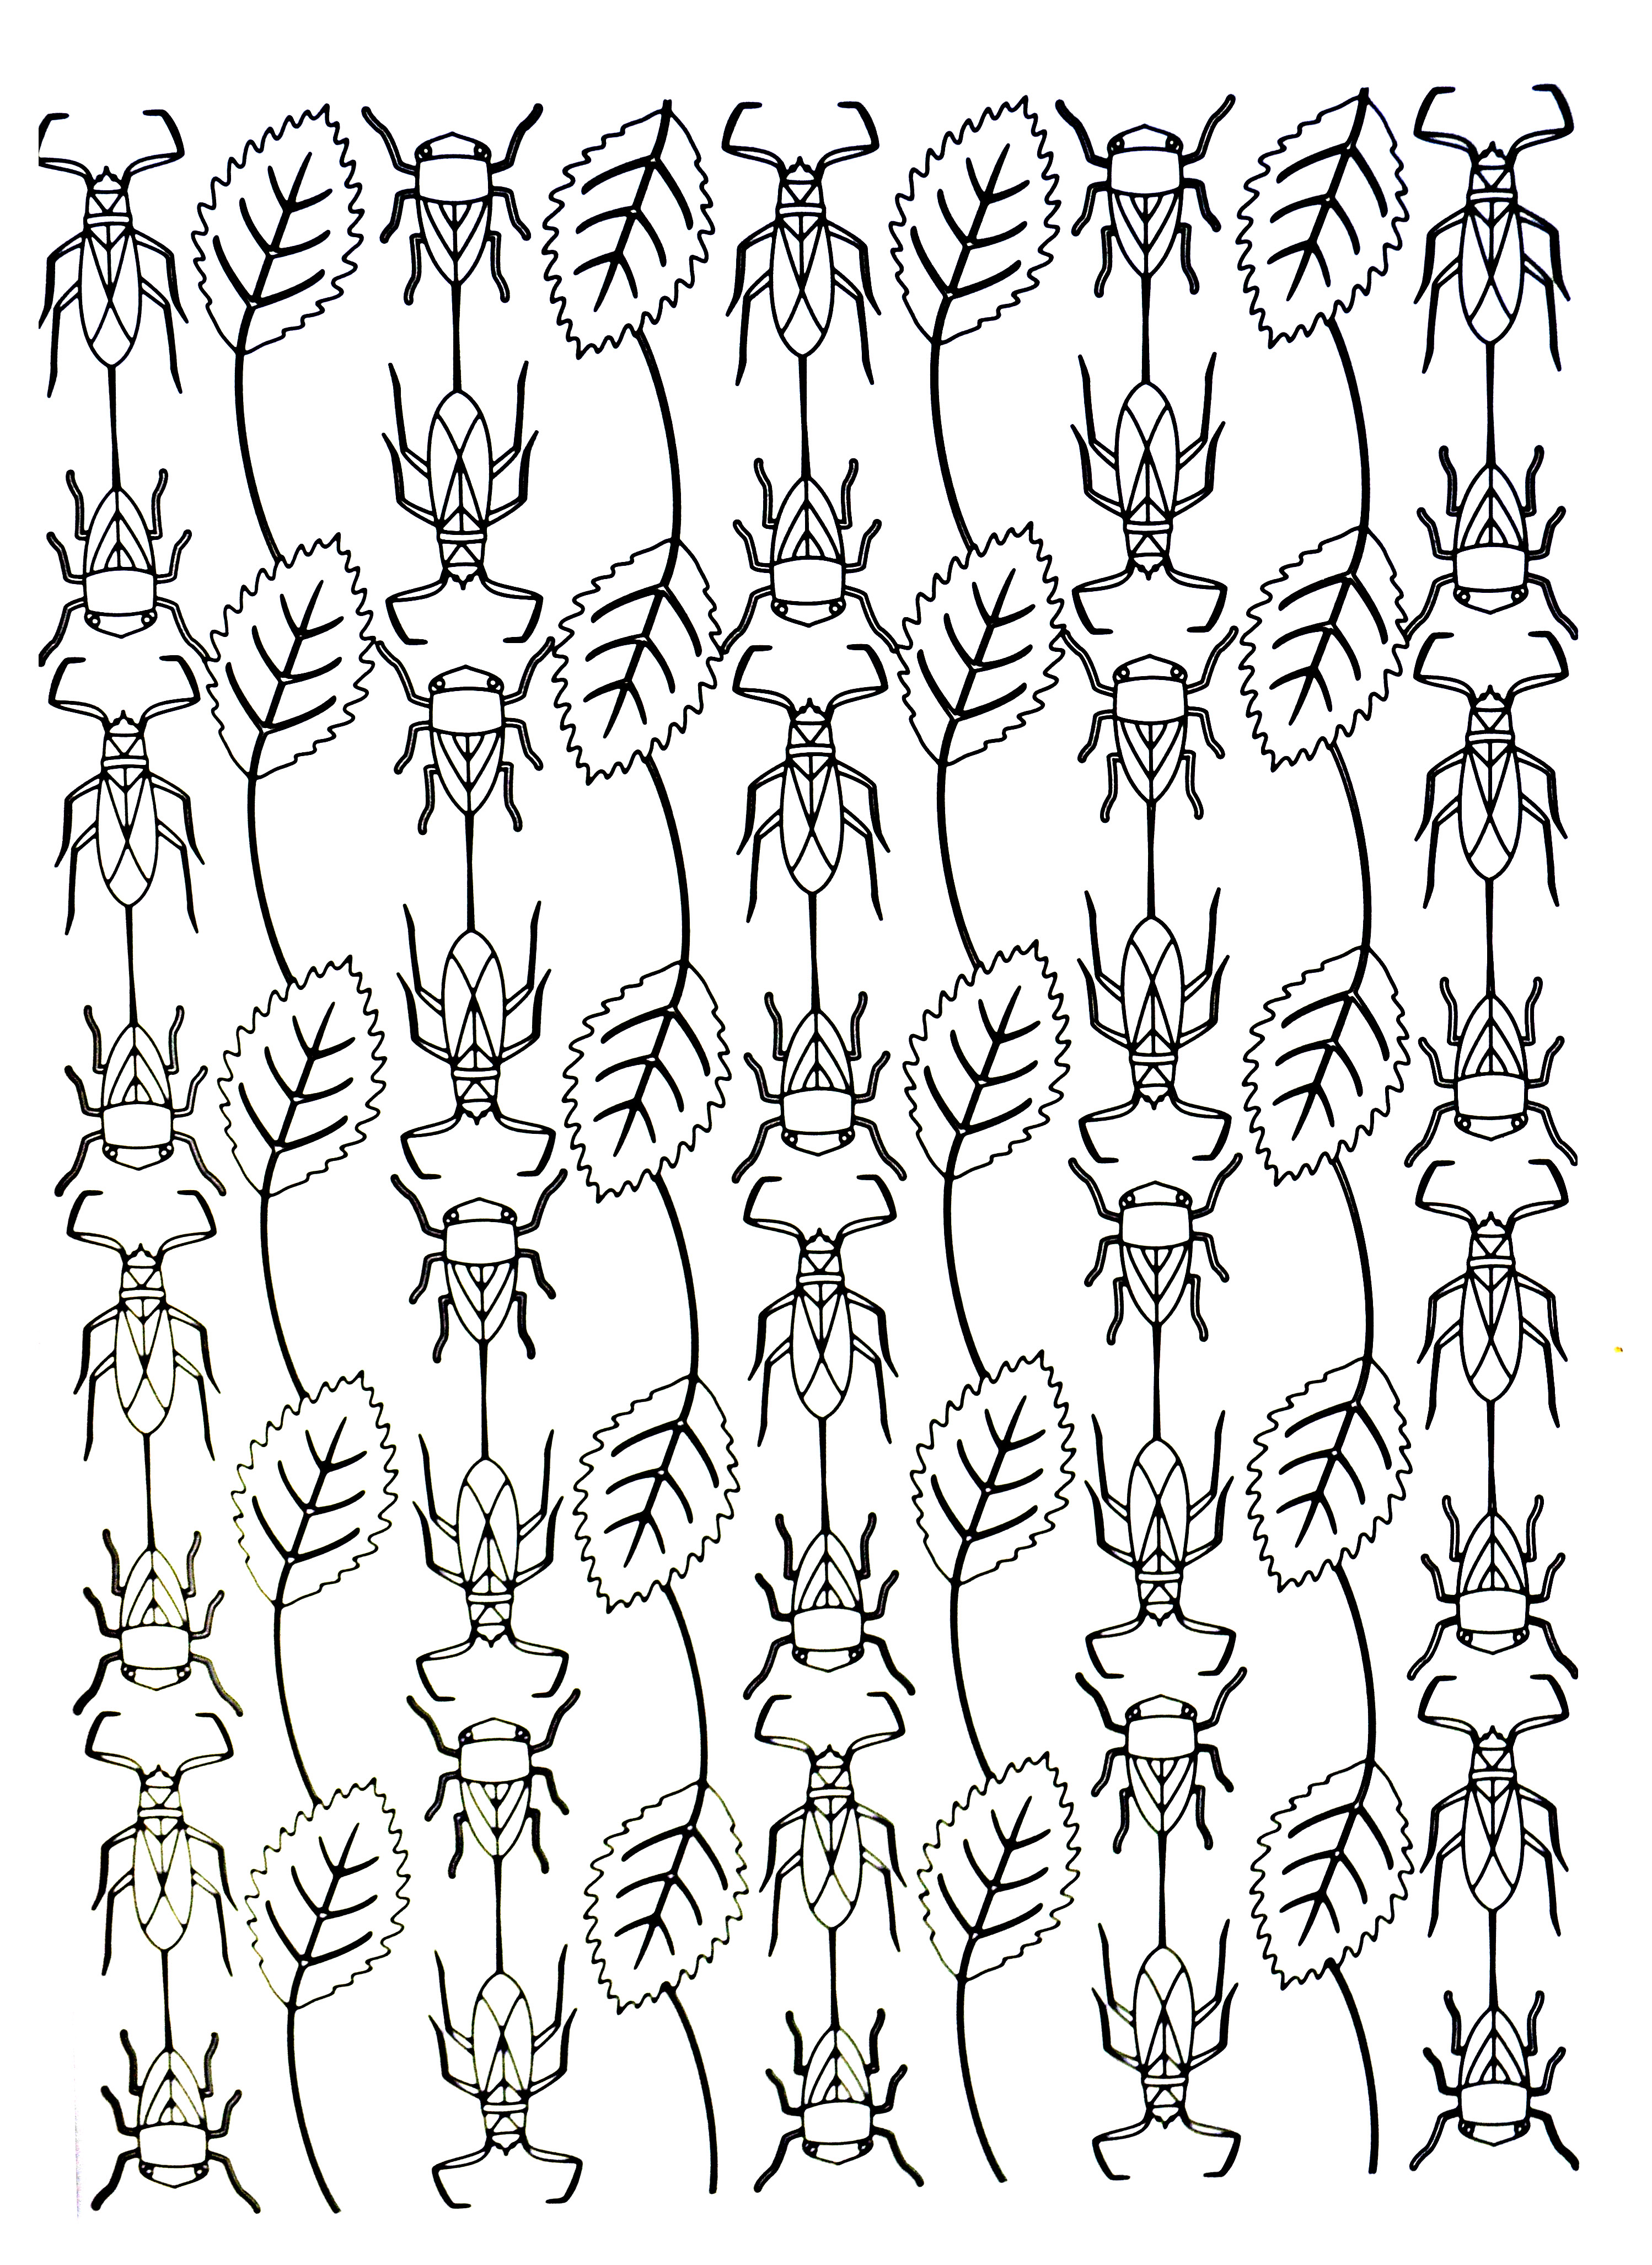 Insects to print for free - Insects Kids Coloring Pages